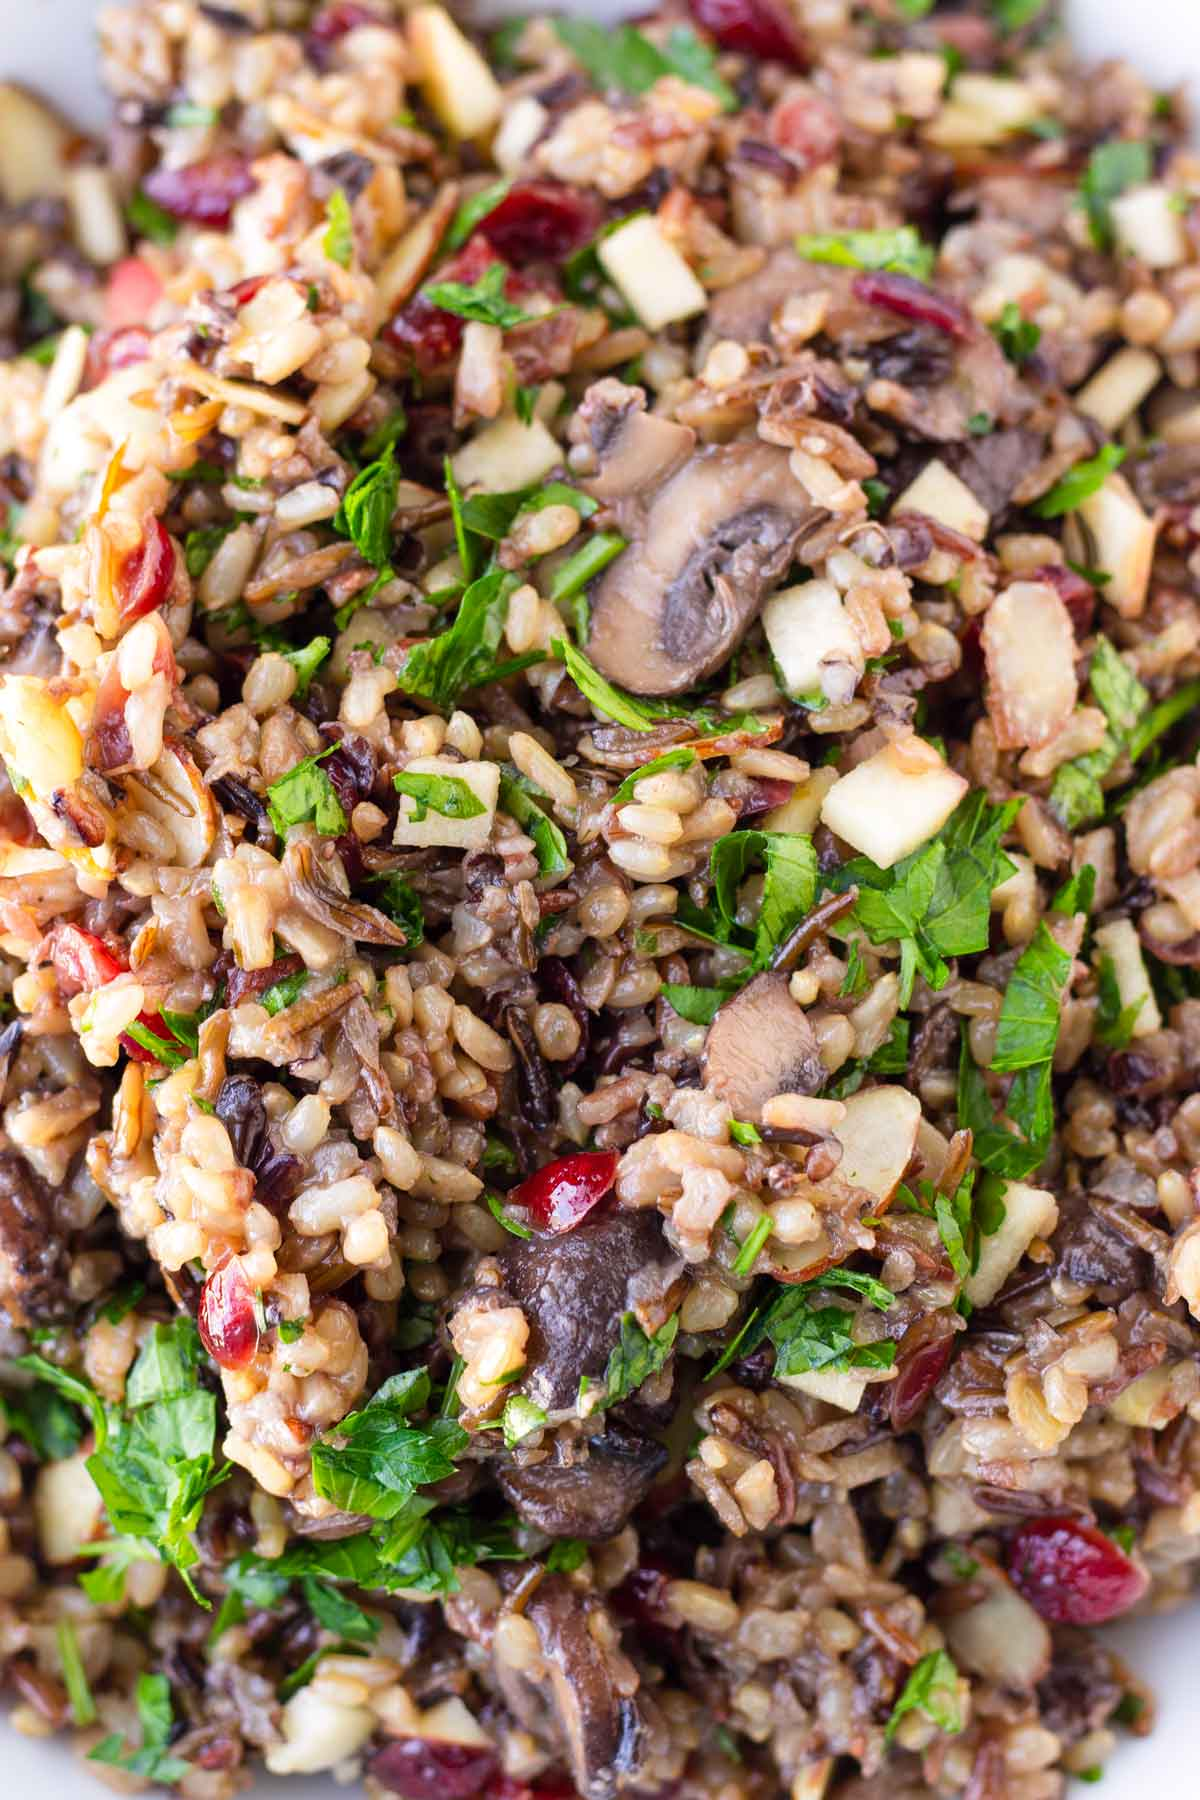 mixed rice blend with mushrooms, parsley, cranberries